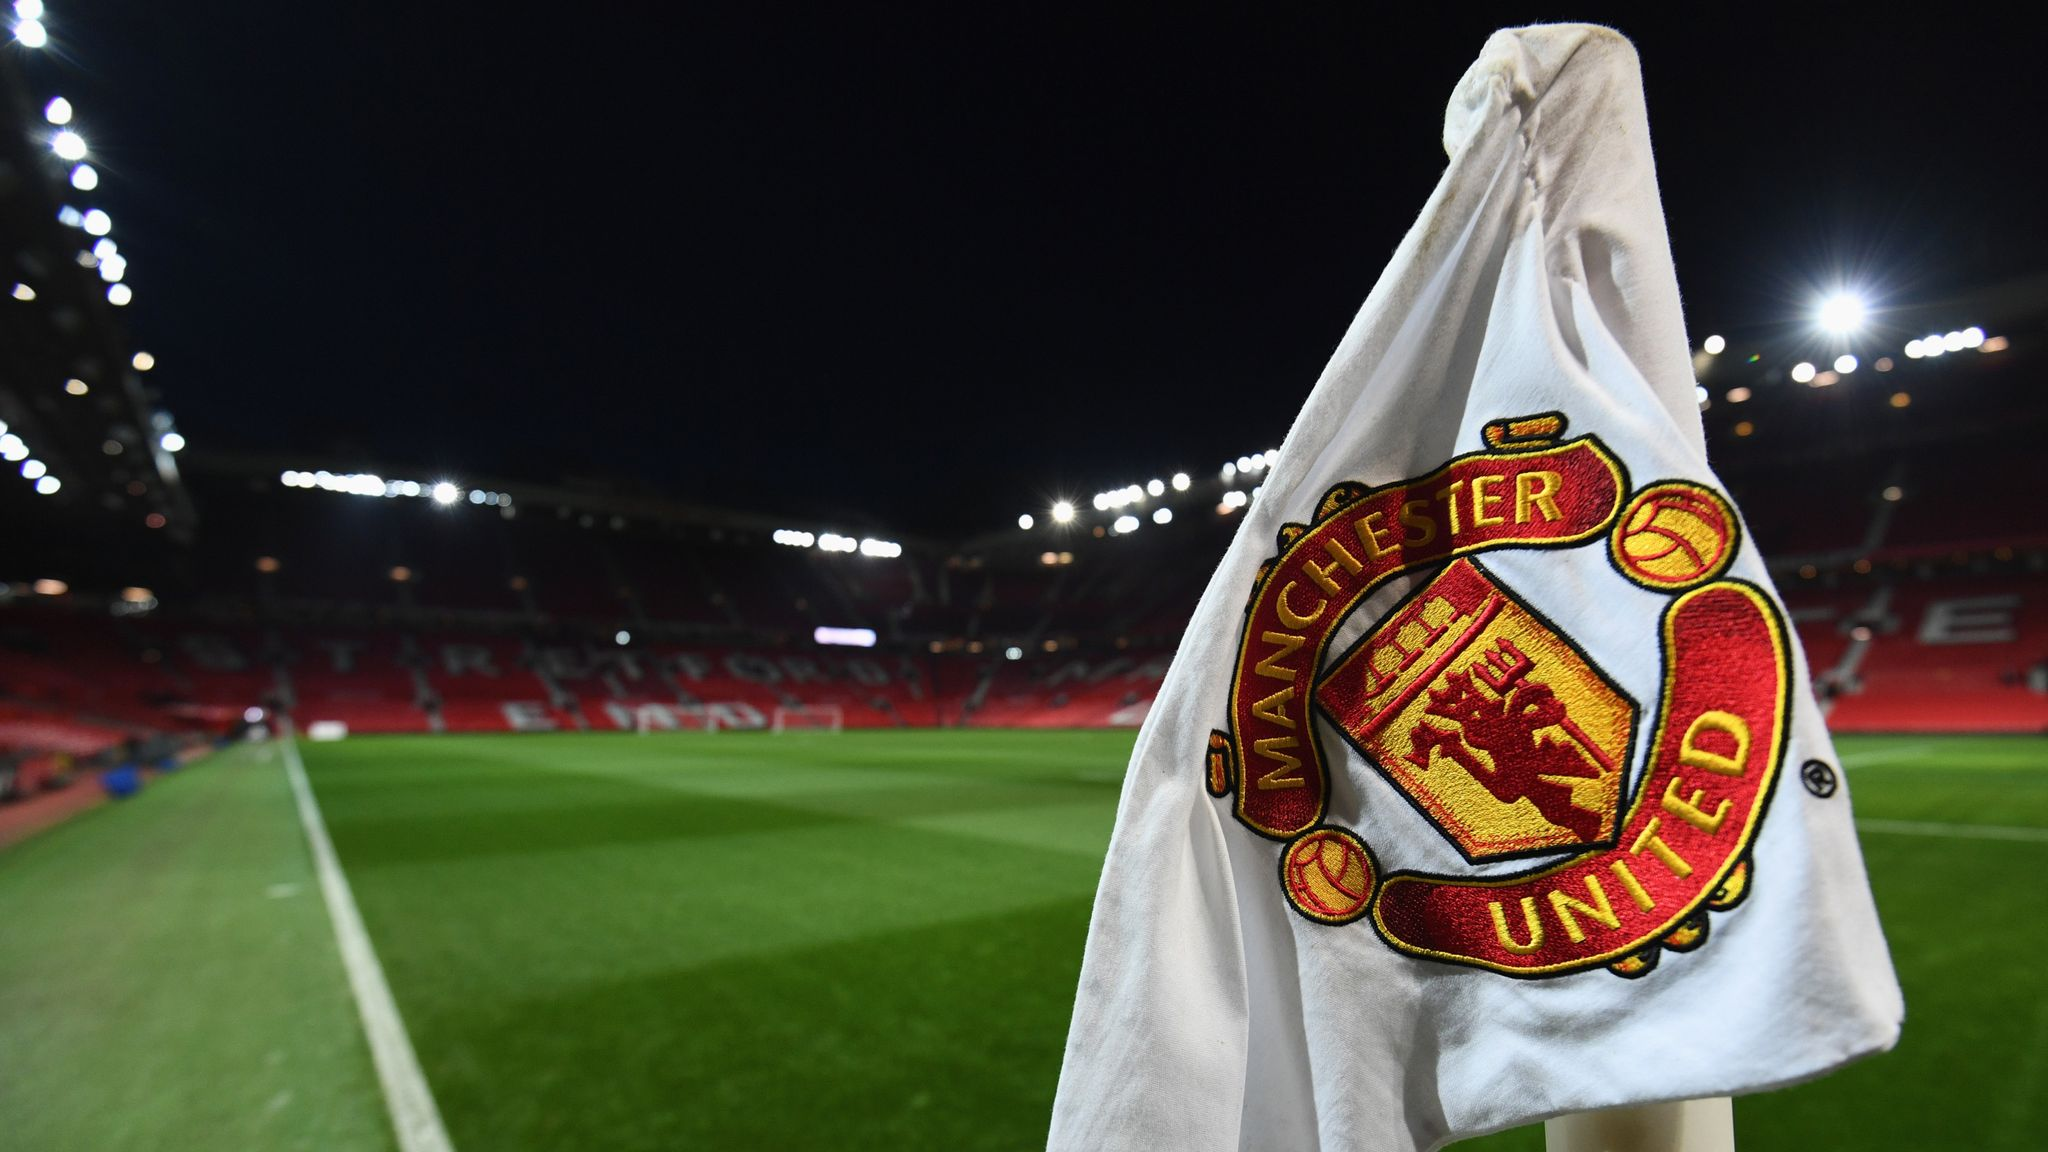 Manchester United fans top list of football-related arrests